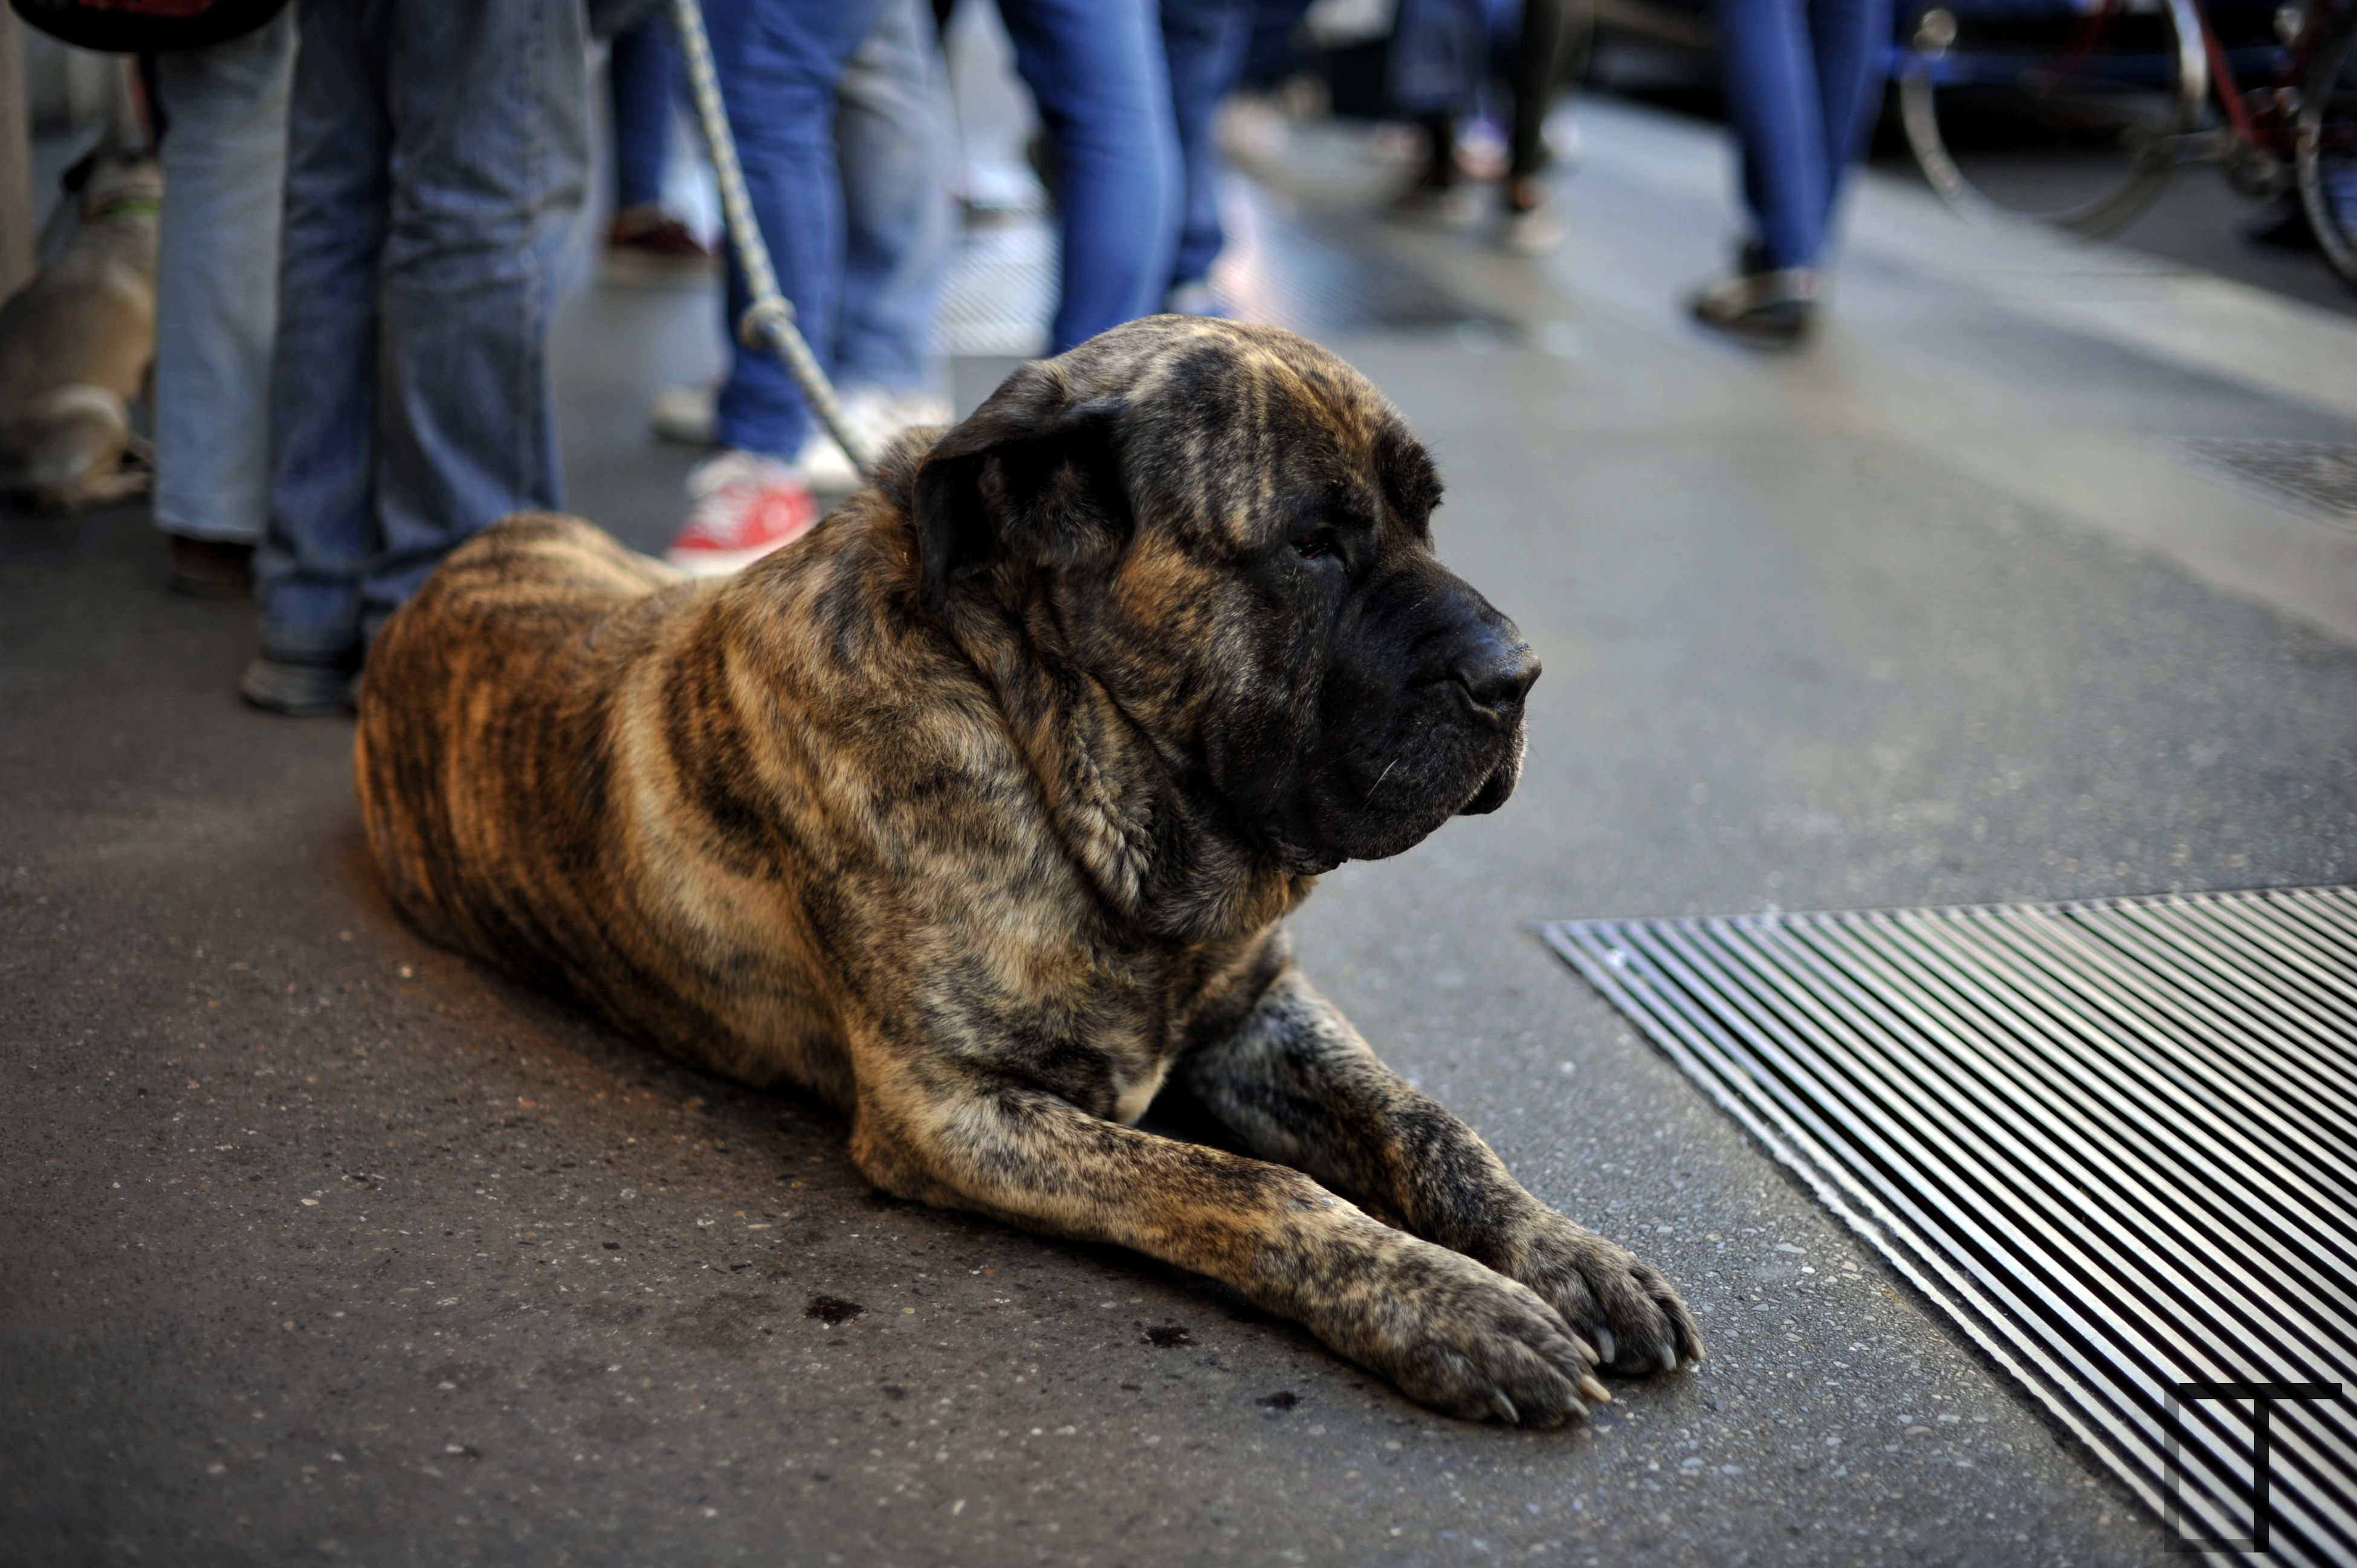 pets, animal themes, mammal, domestic animals, dog, one animal, street, low section, pet owner, men, sidewalk, person, incidental people, walking, road, pet leash, outdoors, day